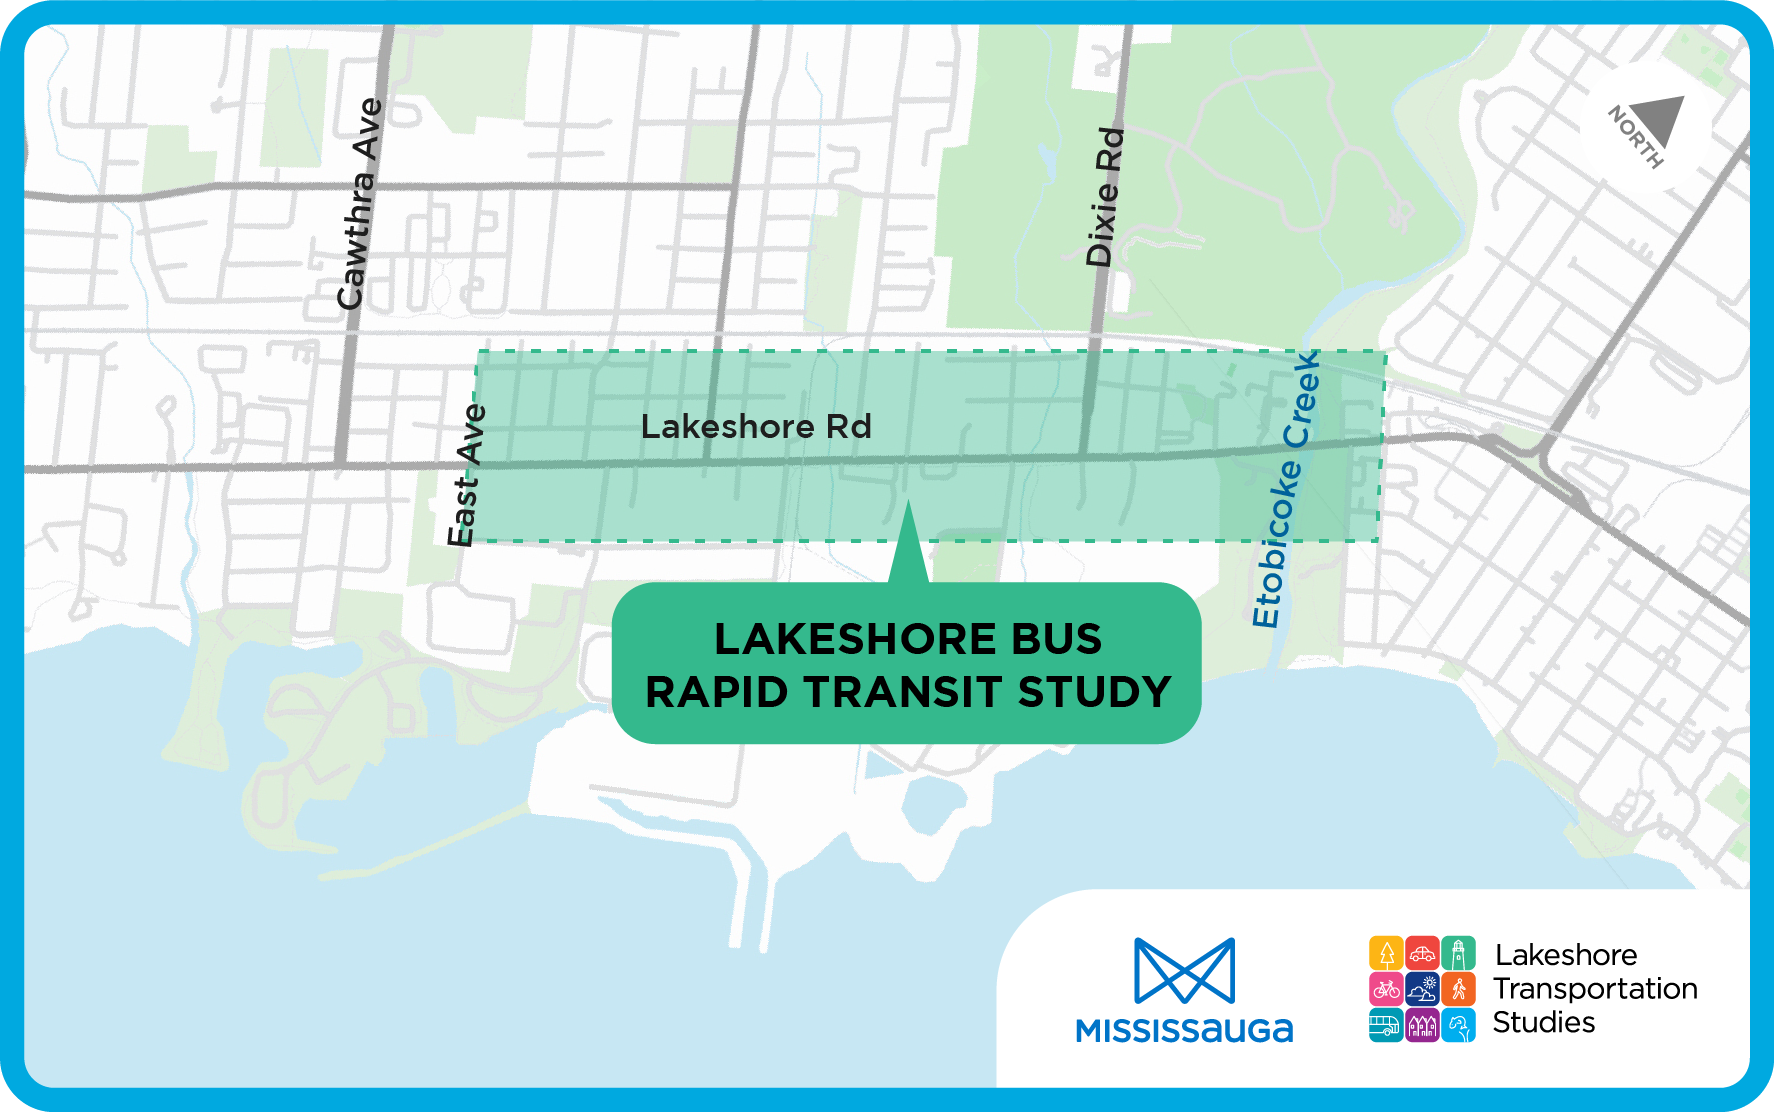 Area map of Lakeshore Road between East Avenue and Etobicoke Creek for the Lakeshore Bus Rapid Transit (BRT) study.